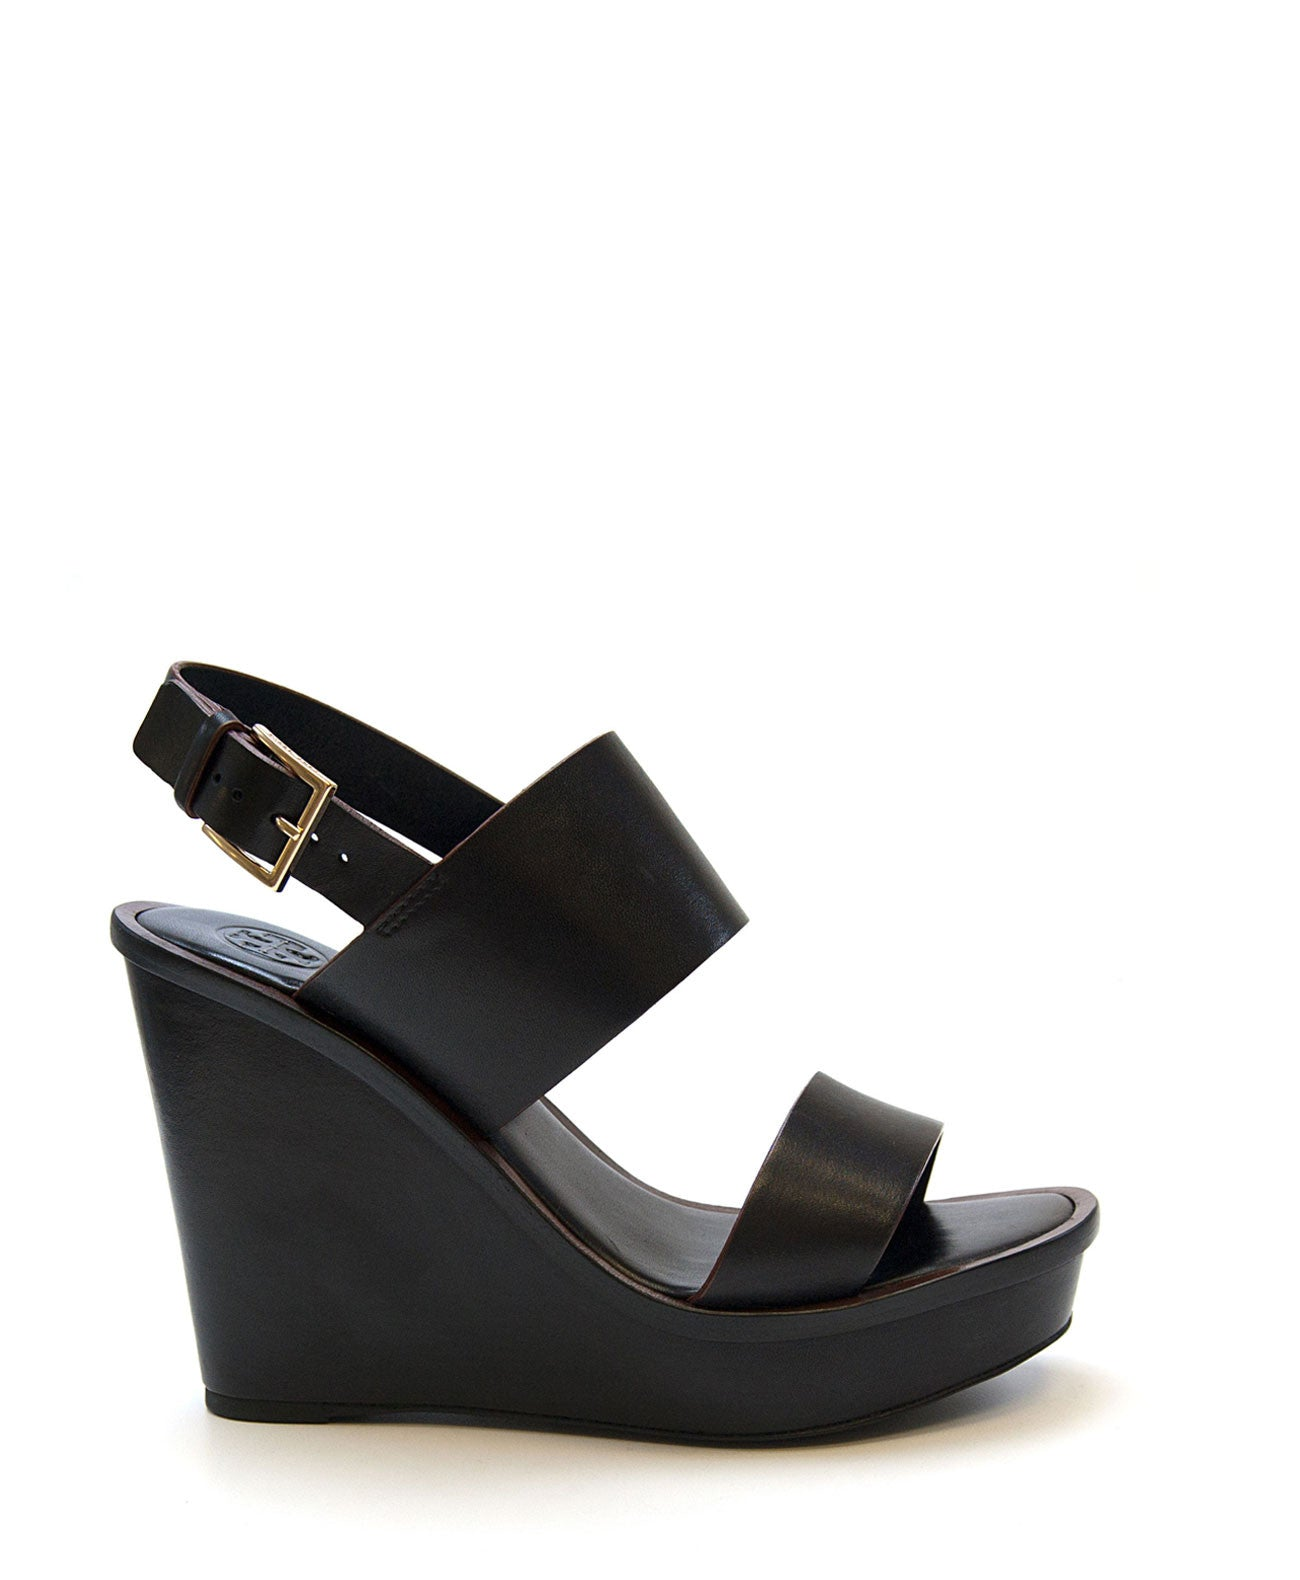 Lexington Wedge Sandal (Black) by Tory Burch - Koko & Palenki - 1